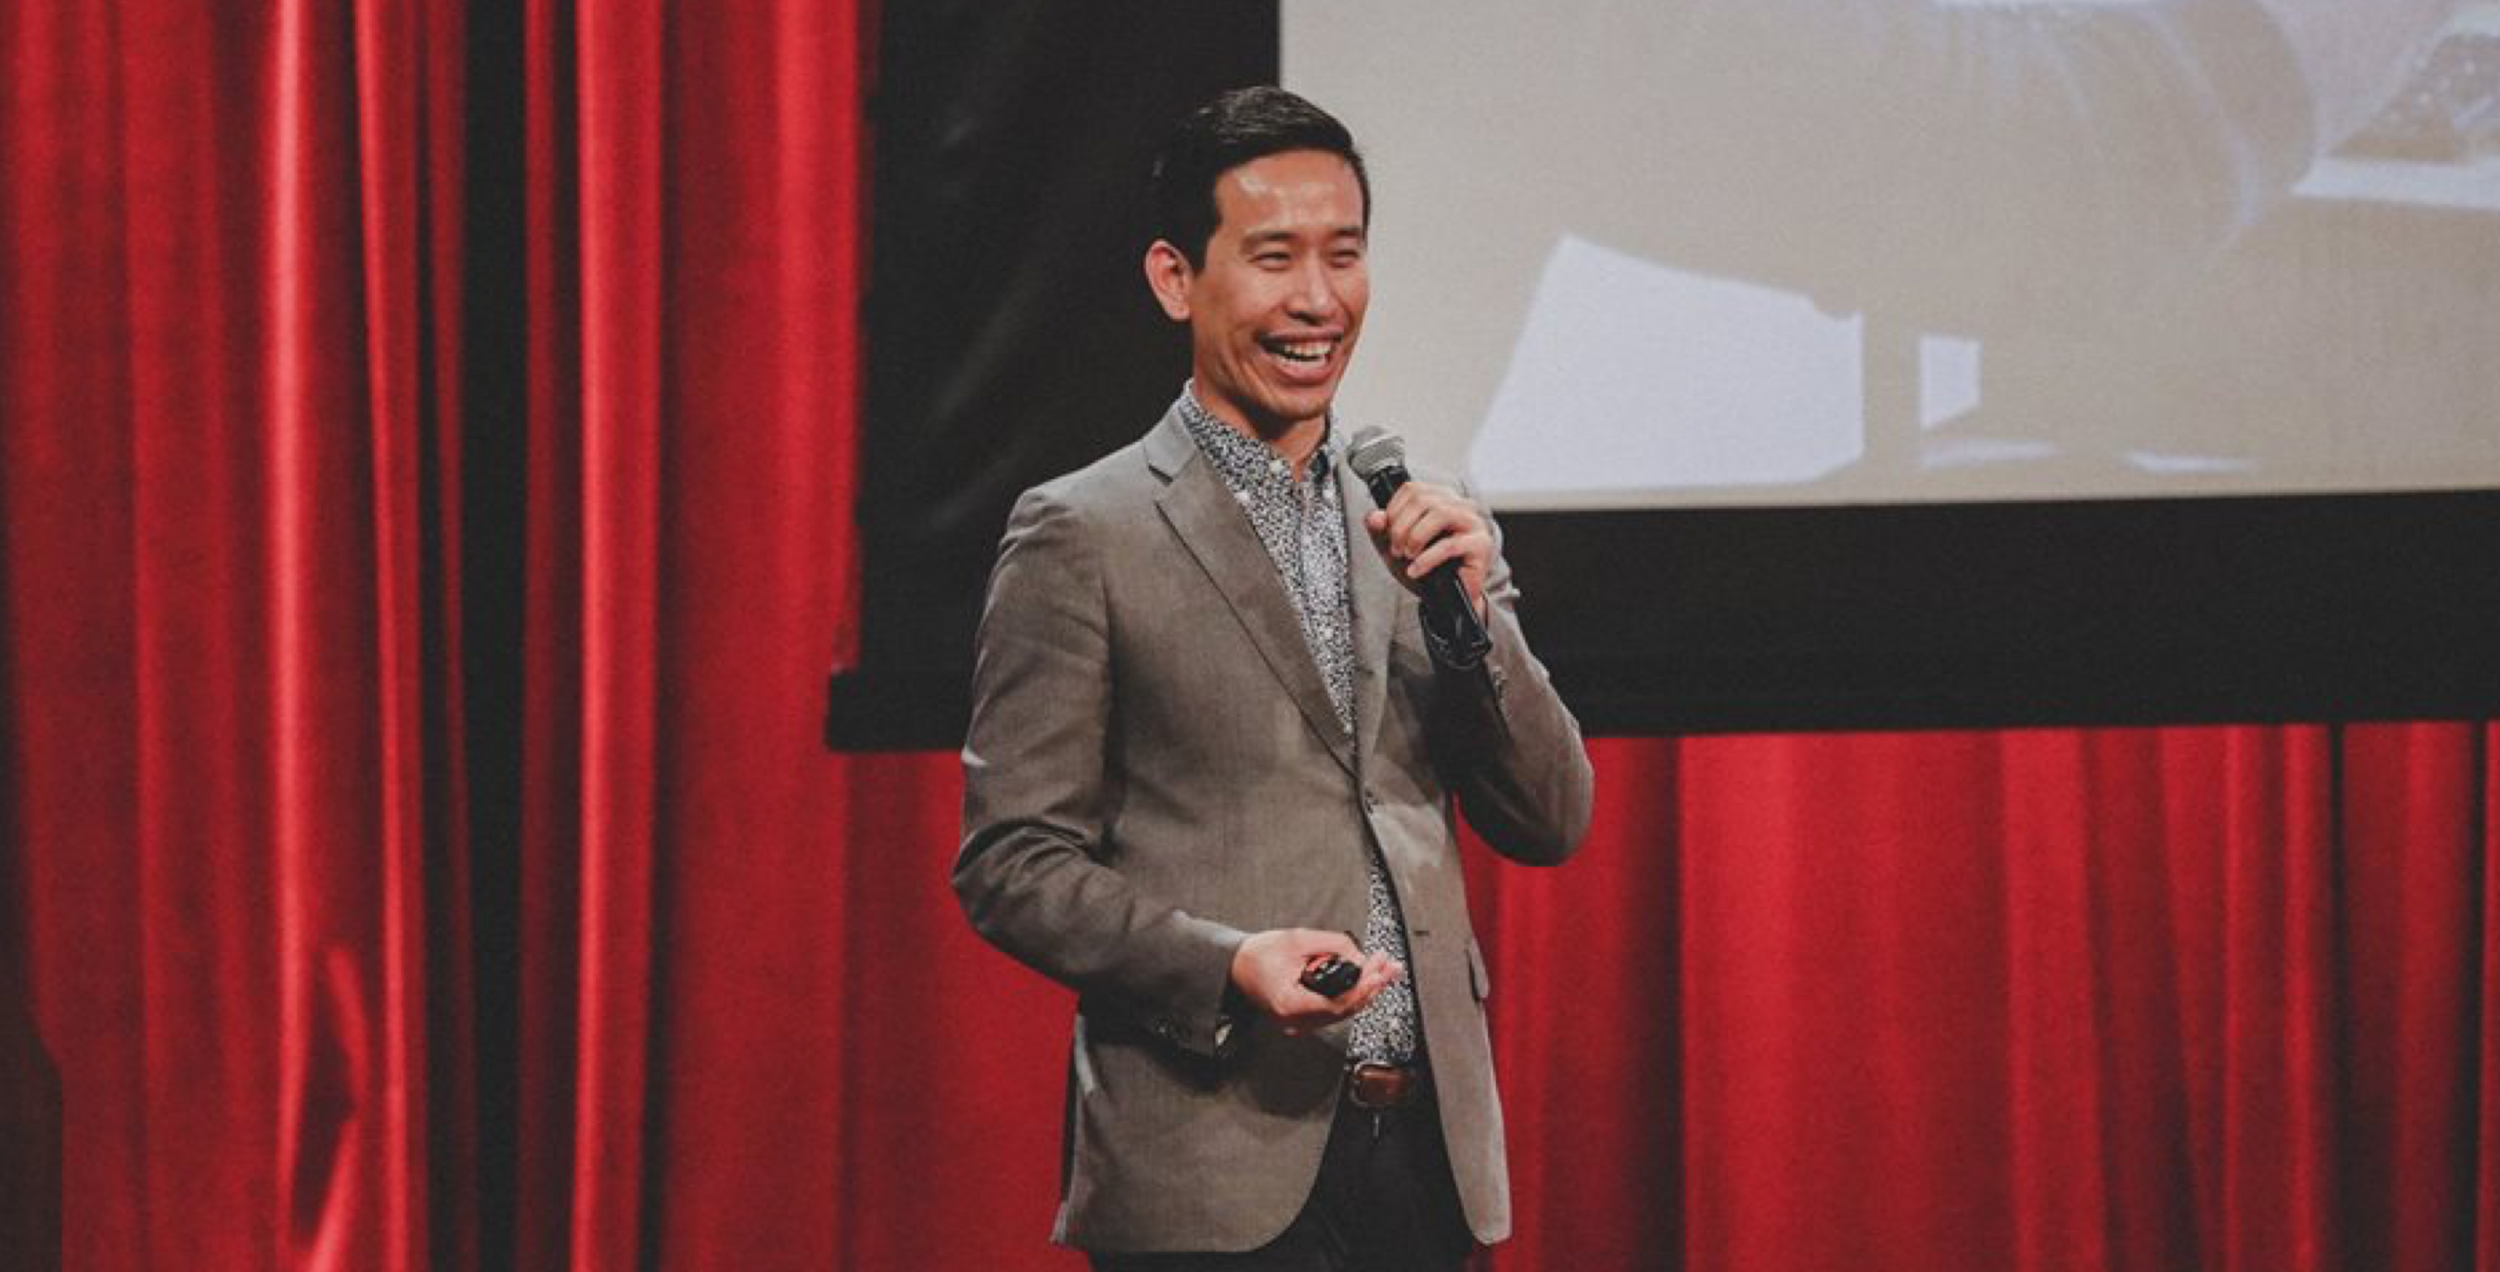 Keynotes & Talks - With a combined ?? years working in the field, Foossa co-founders David Colby Reed and Lee Sean Huang have traveled around the world speaking on their groundbreaking approach to storytelling and community centered design thinking.